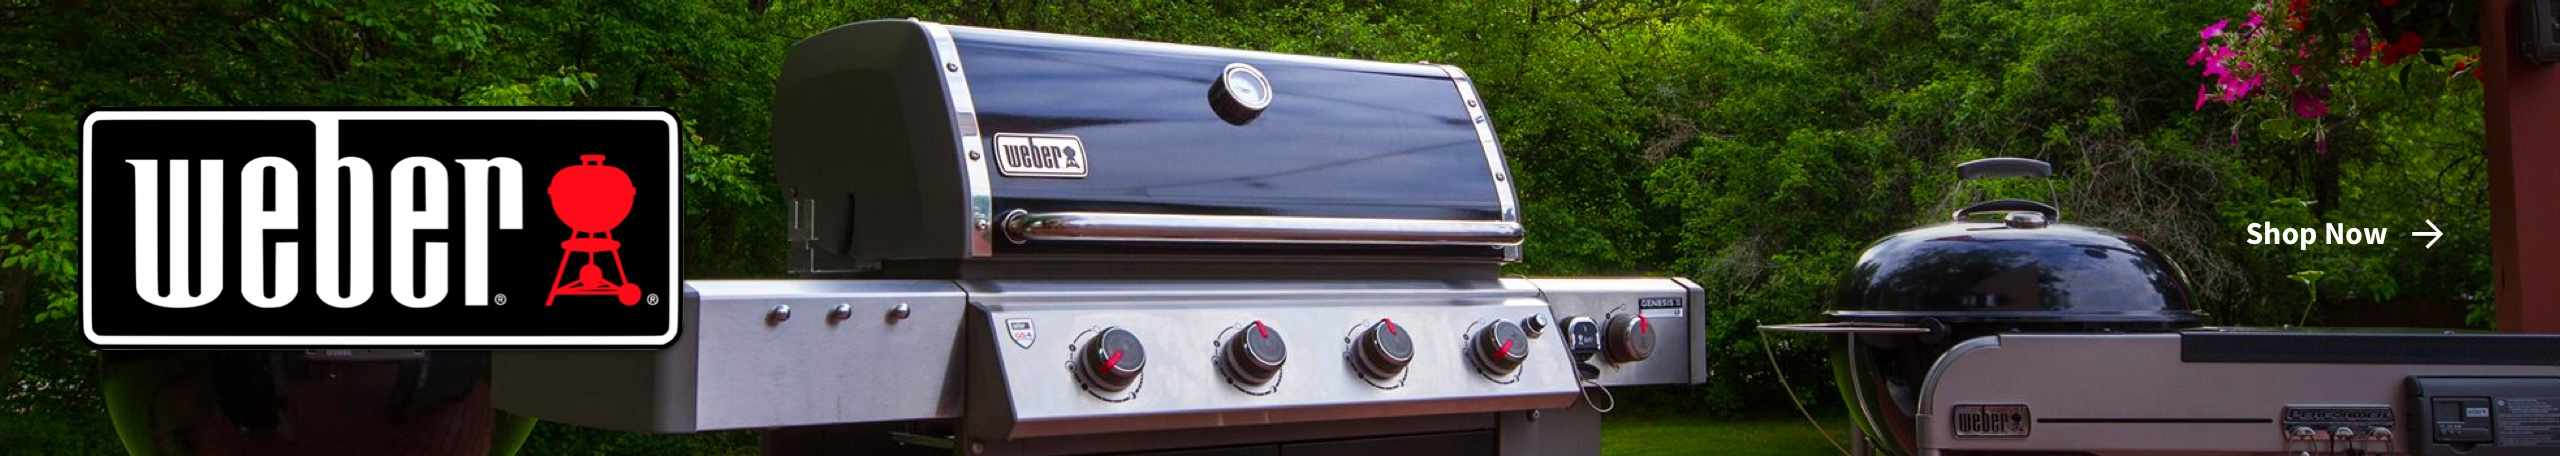 Shop Weber grills from Carr Hardware